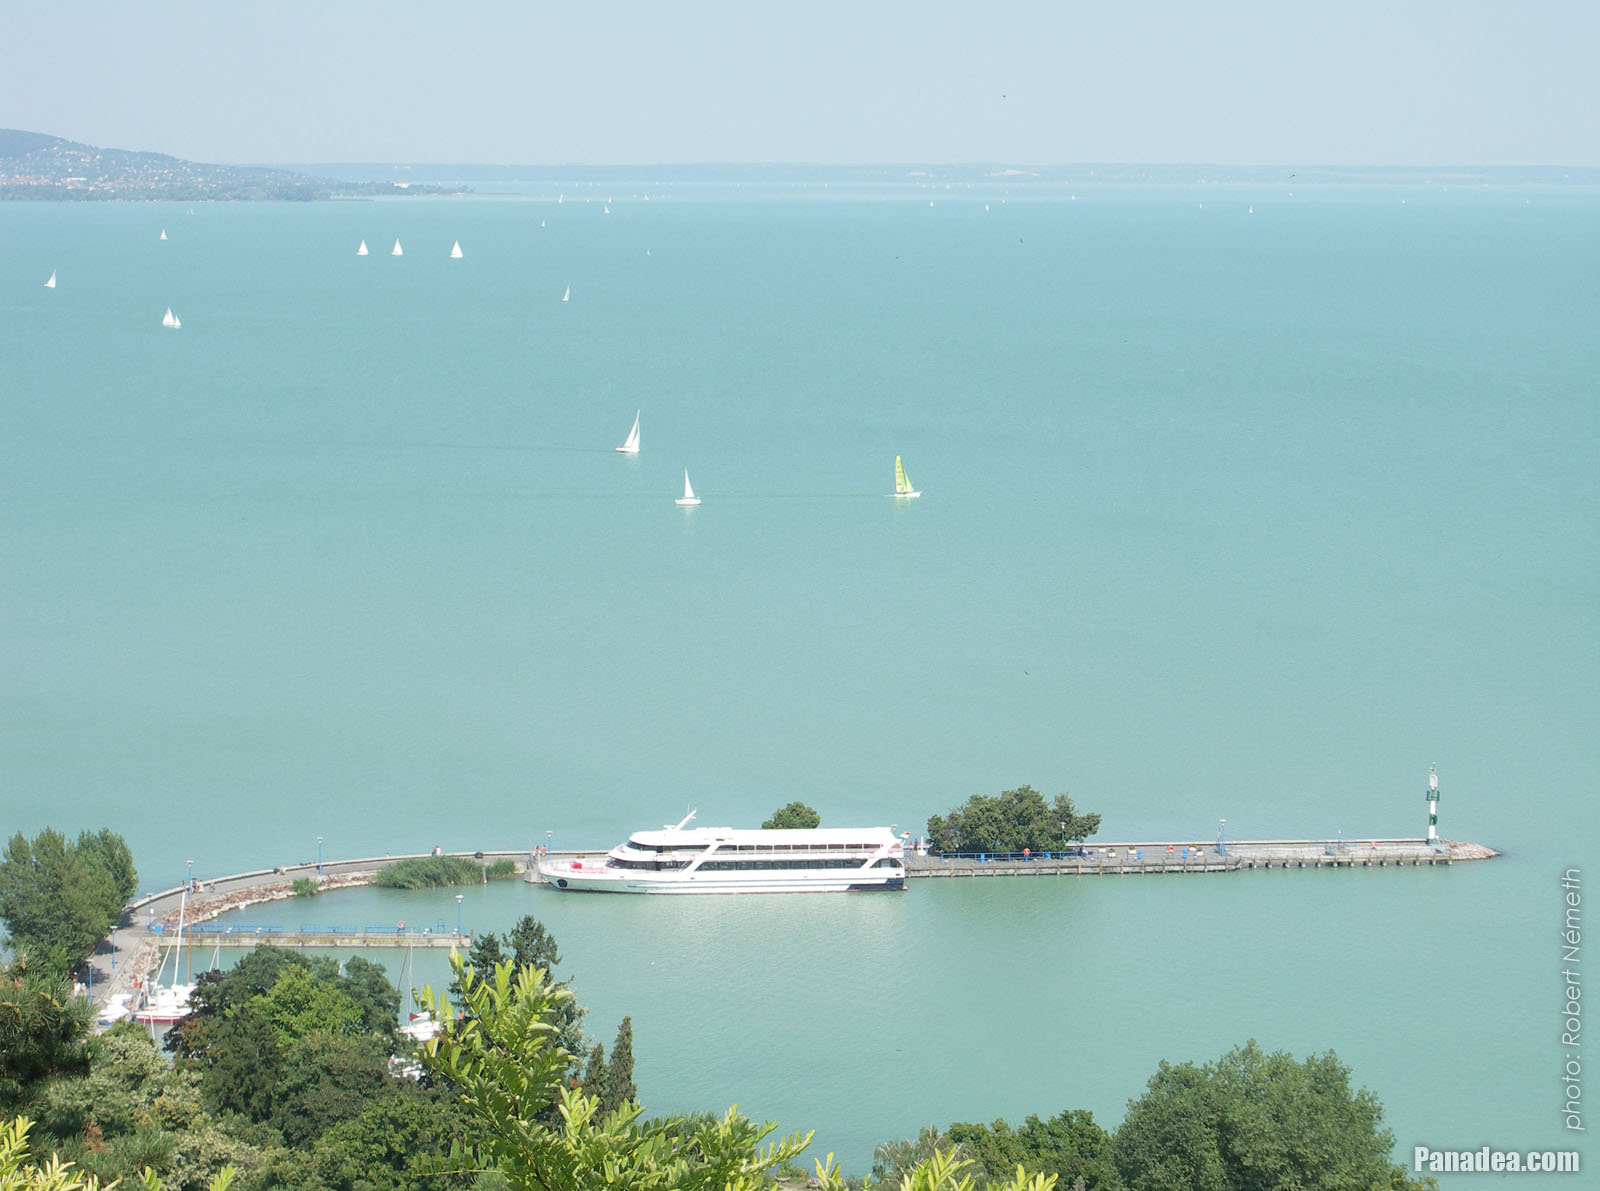 Panadea Gt Travel Guide Photo Gallery Lakeshore Of